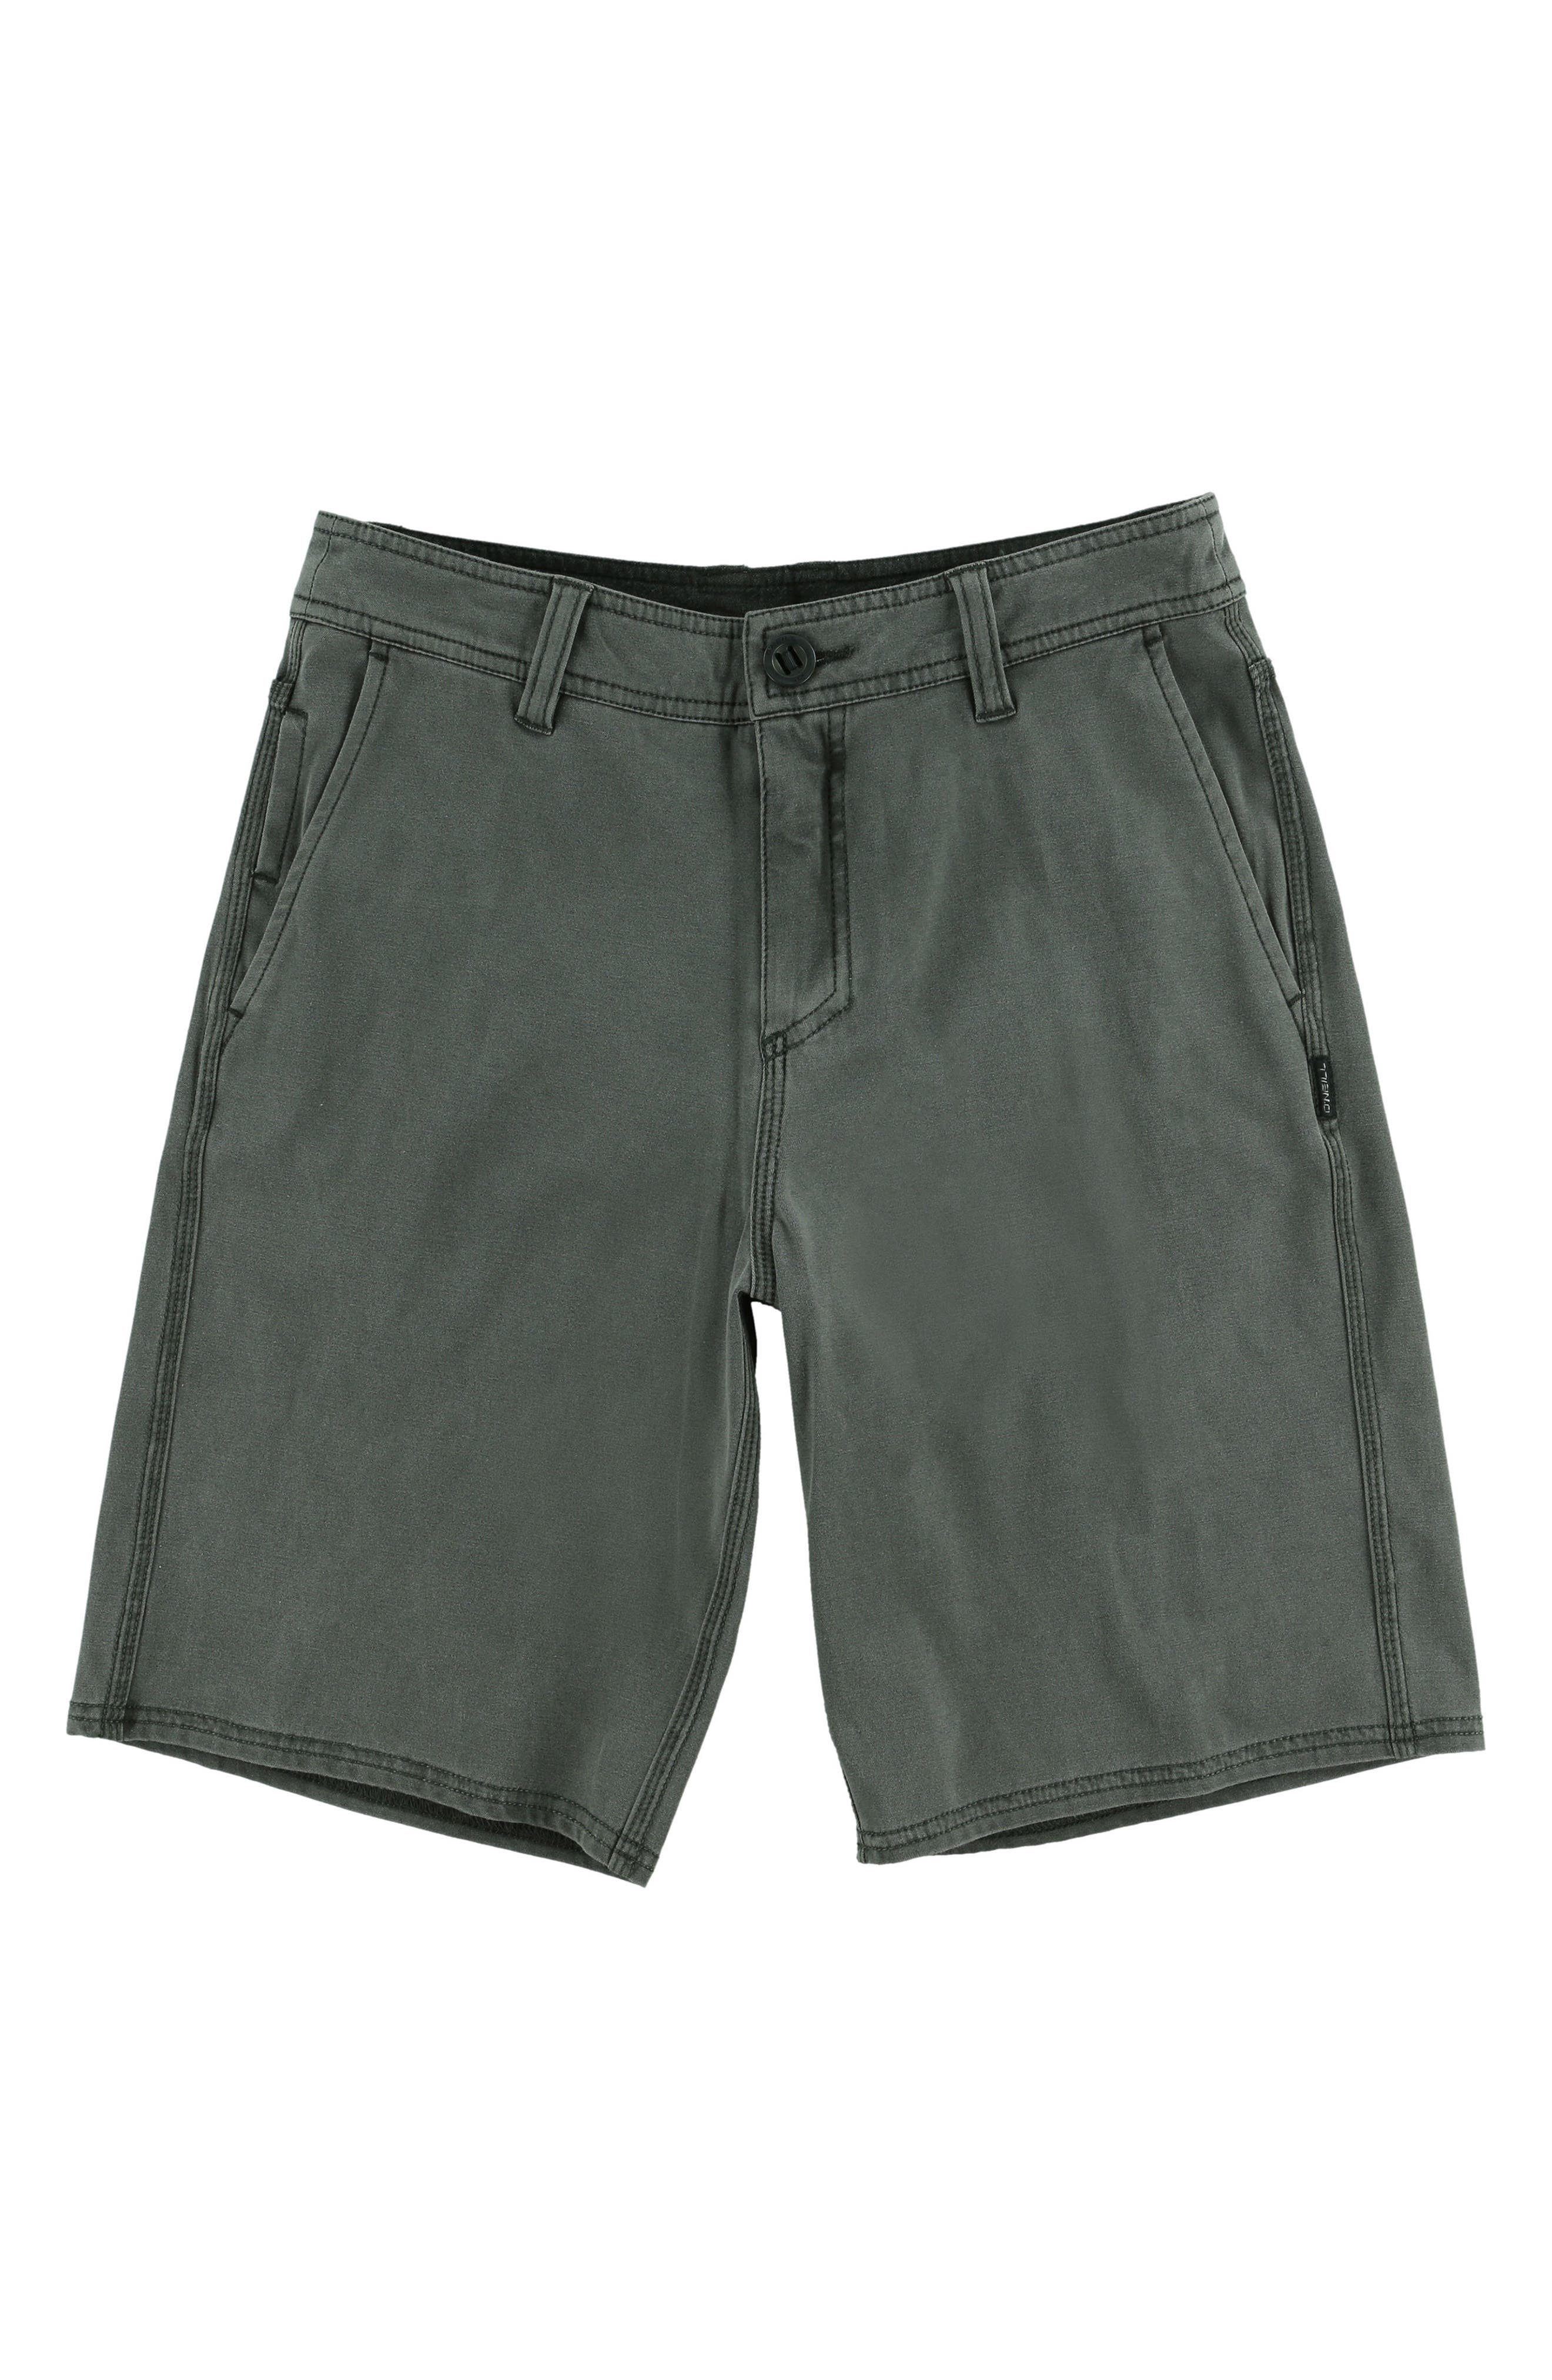 Venture Overdye Shorts,                             Main thumbnail 1, color,                             COFFEE